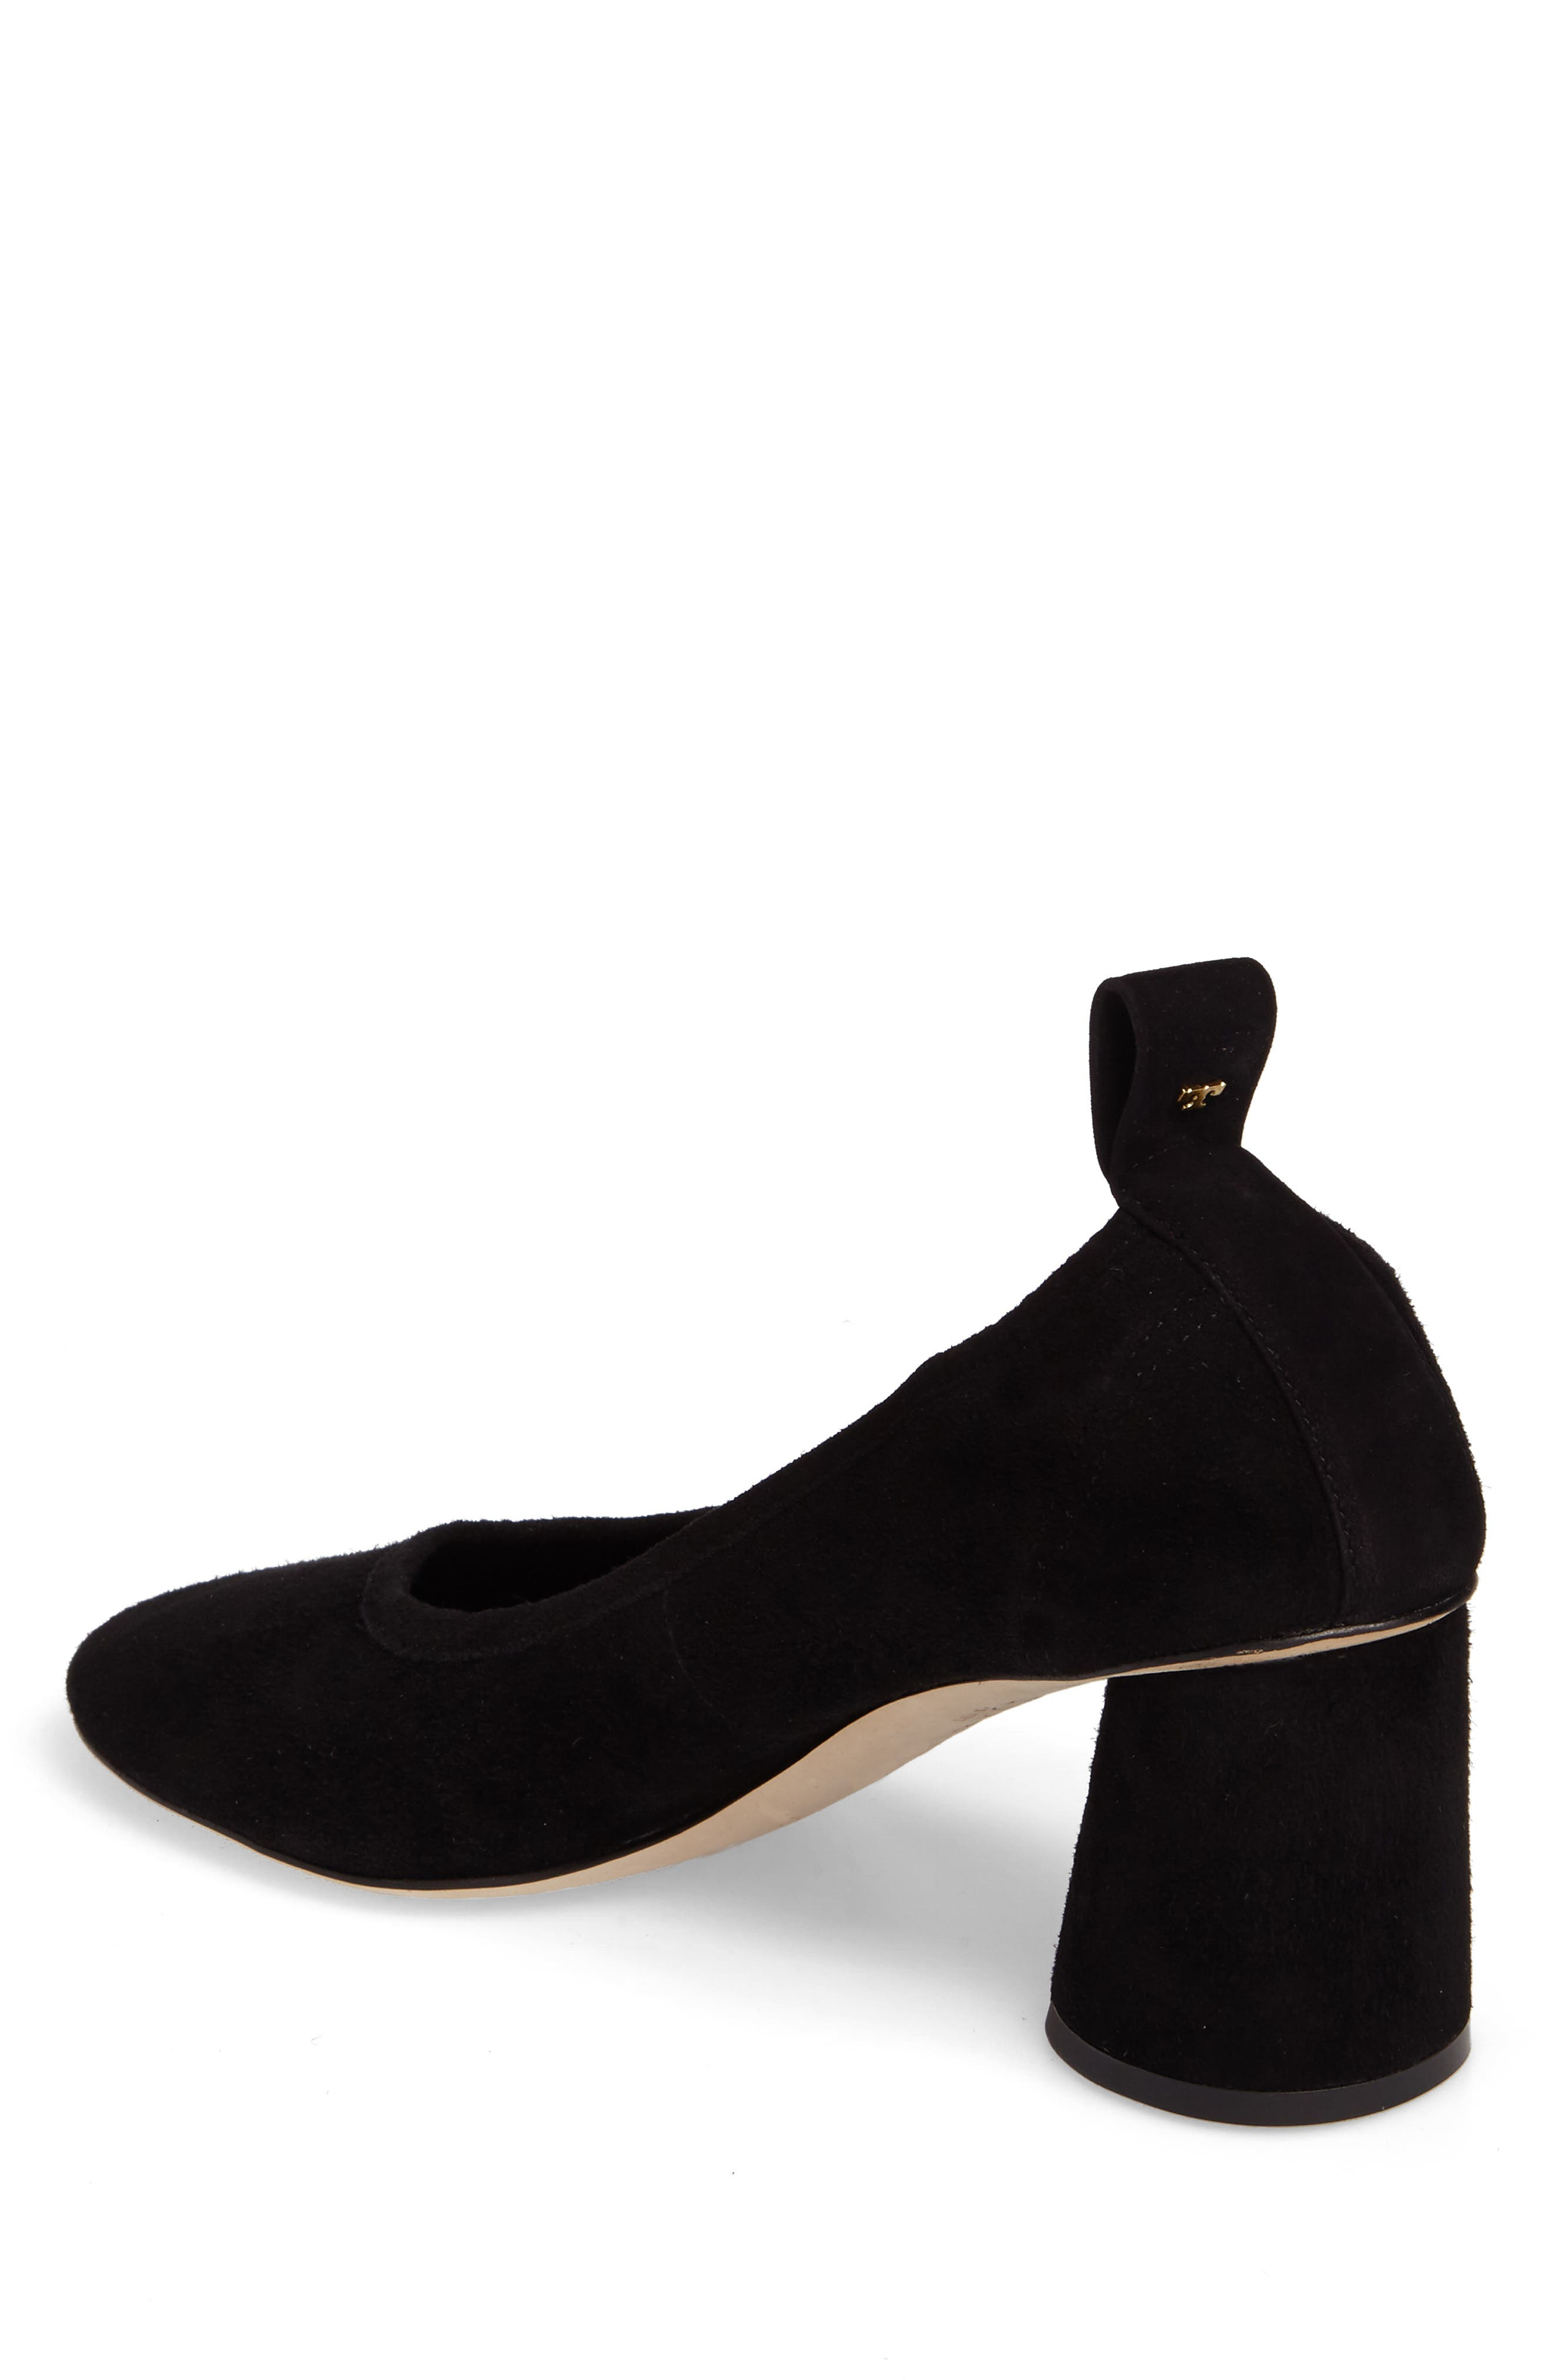 Therese Statement Heel Pump,                             Alternate thumbnail 2, color,                             001